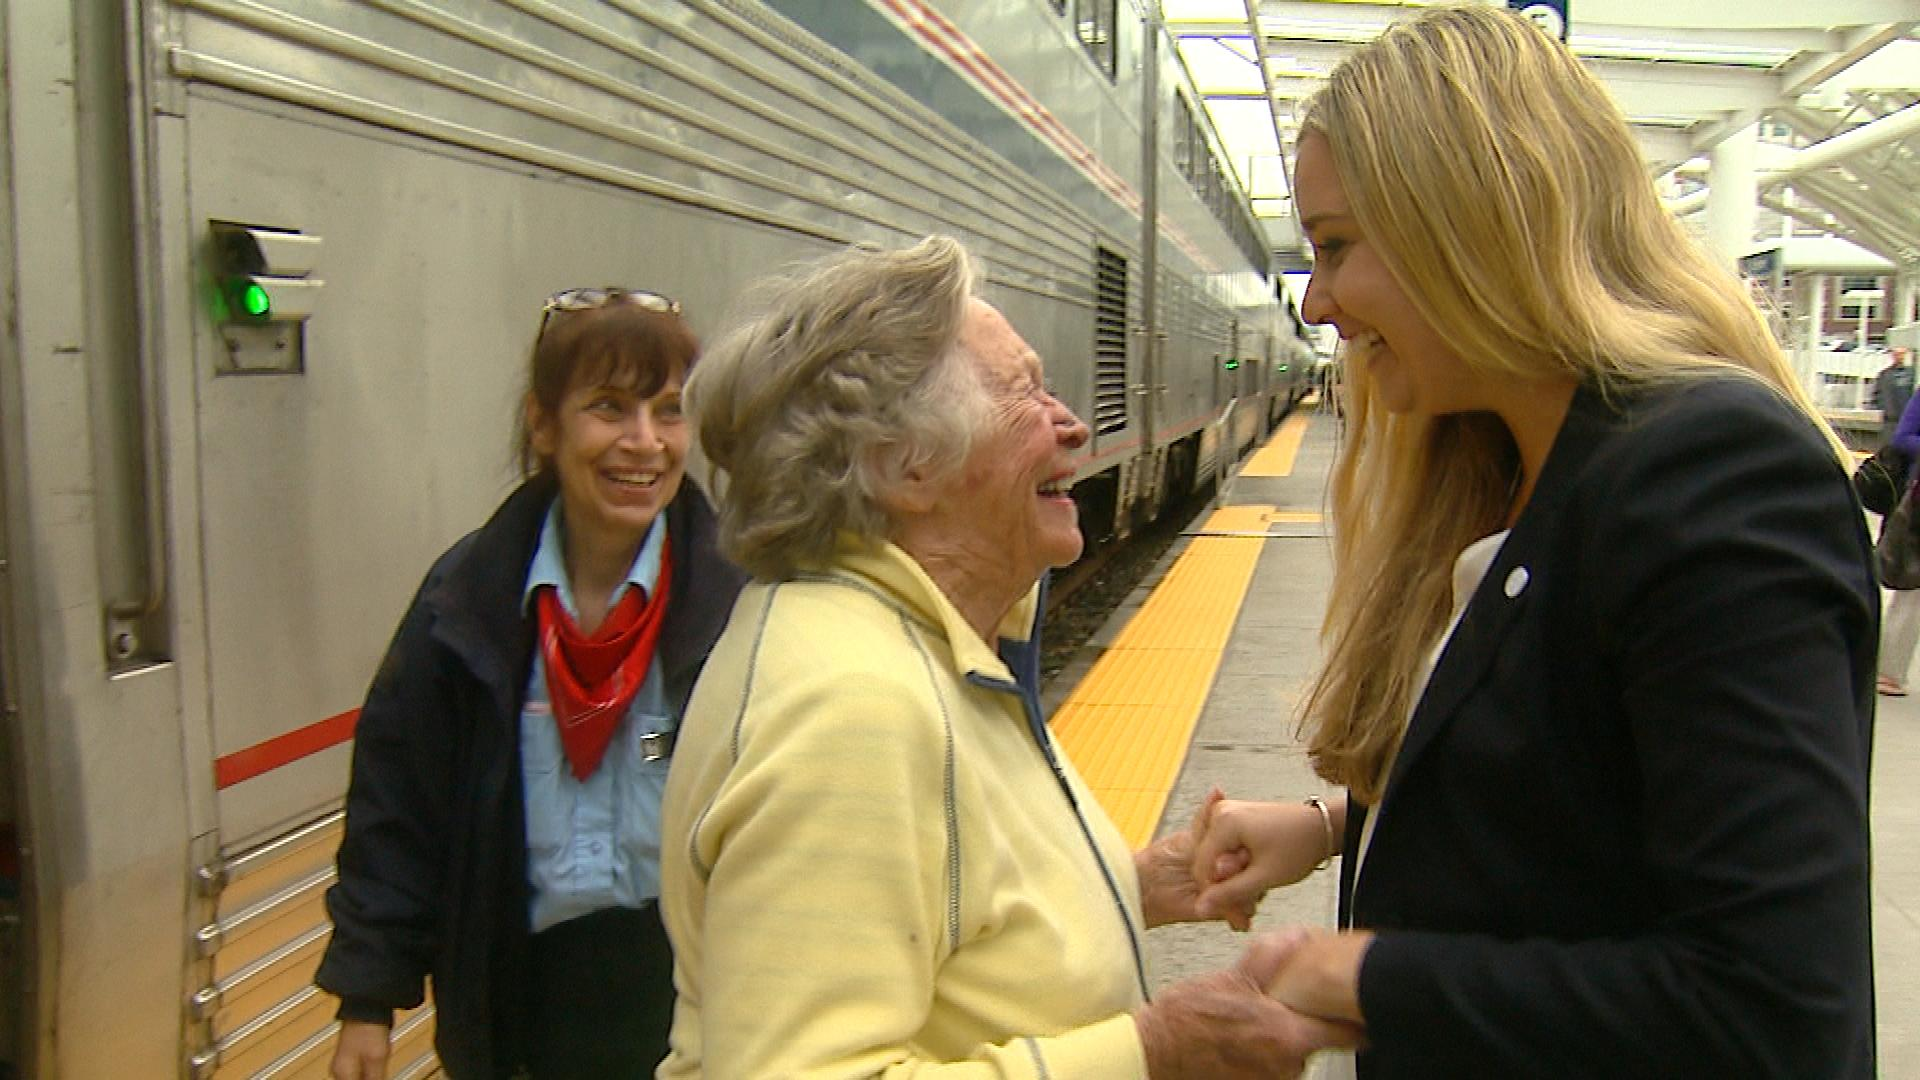 Dorothy Kolberg is greeted by her granddaughter Elizabeth at Union Station (credit: CBS)